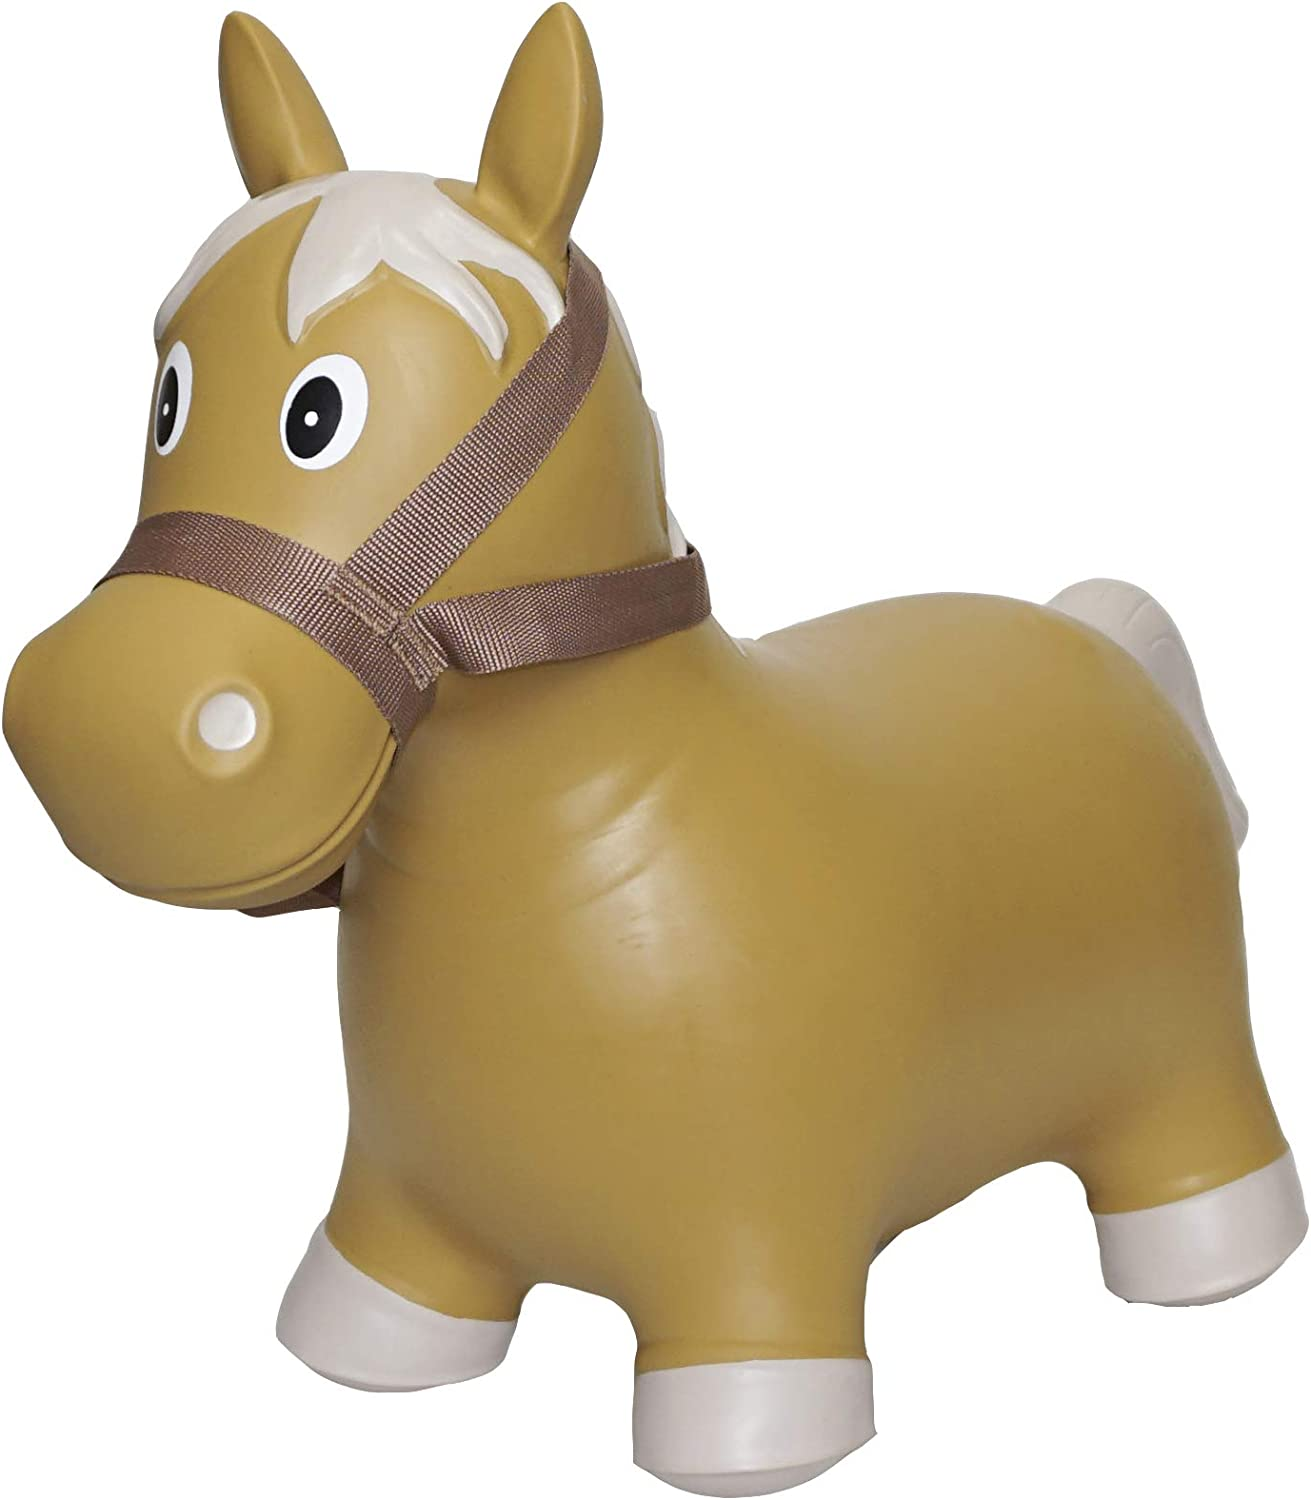 Big Country Toys Lil Bucker Horse - Kids Inflatable Bouncy Horse - Hopper Horse with Bridle & Reins - Horse Riding Toys - Farm Toys - Rodeo Toys